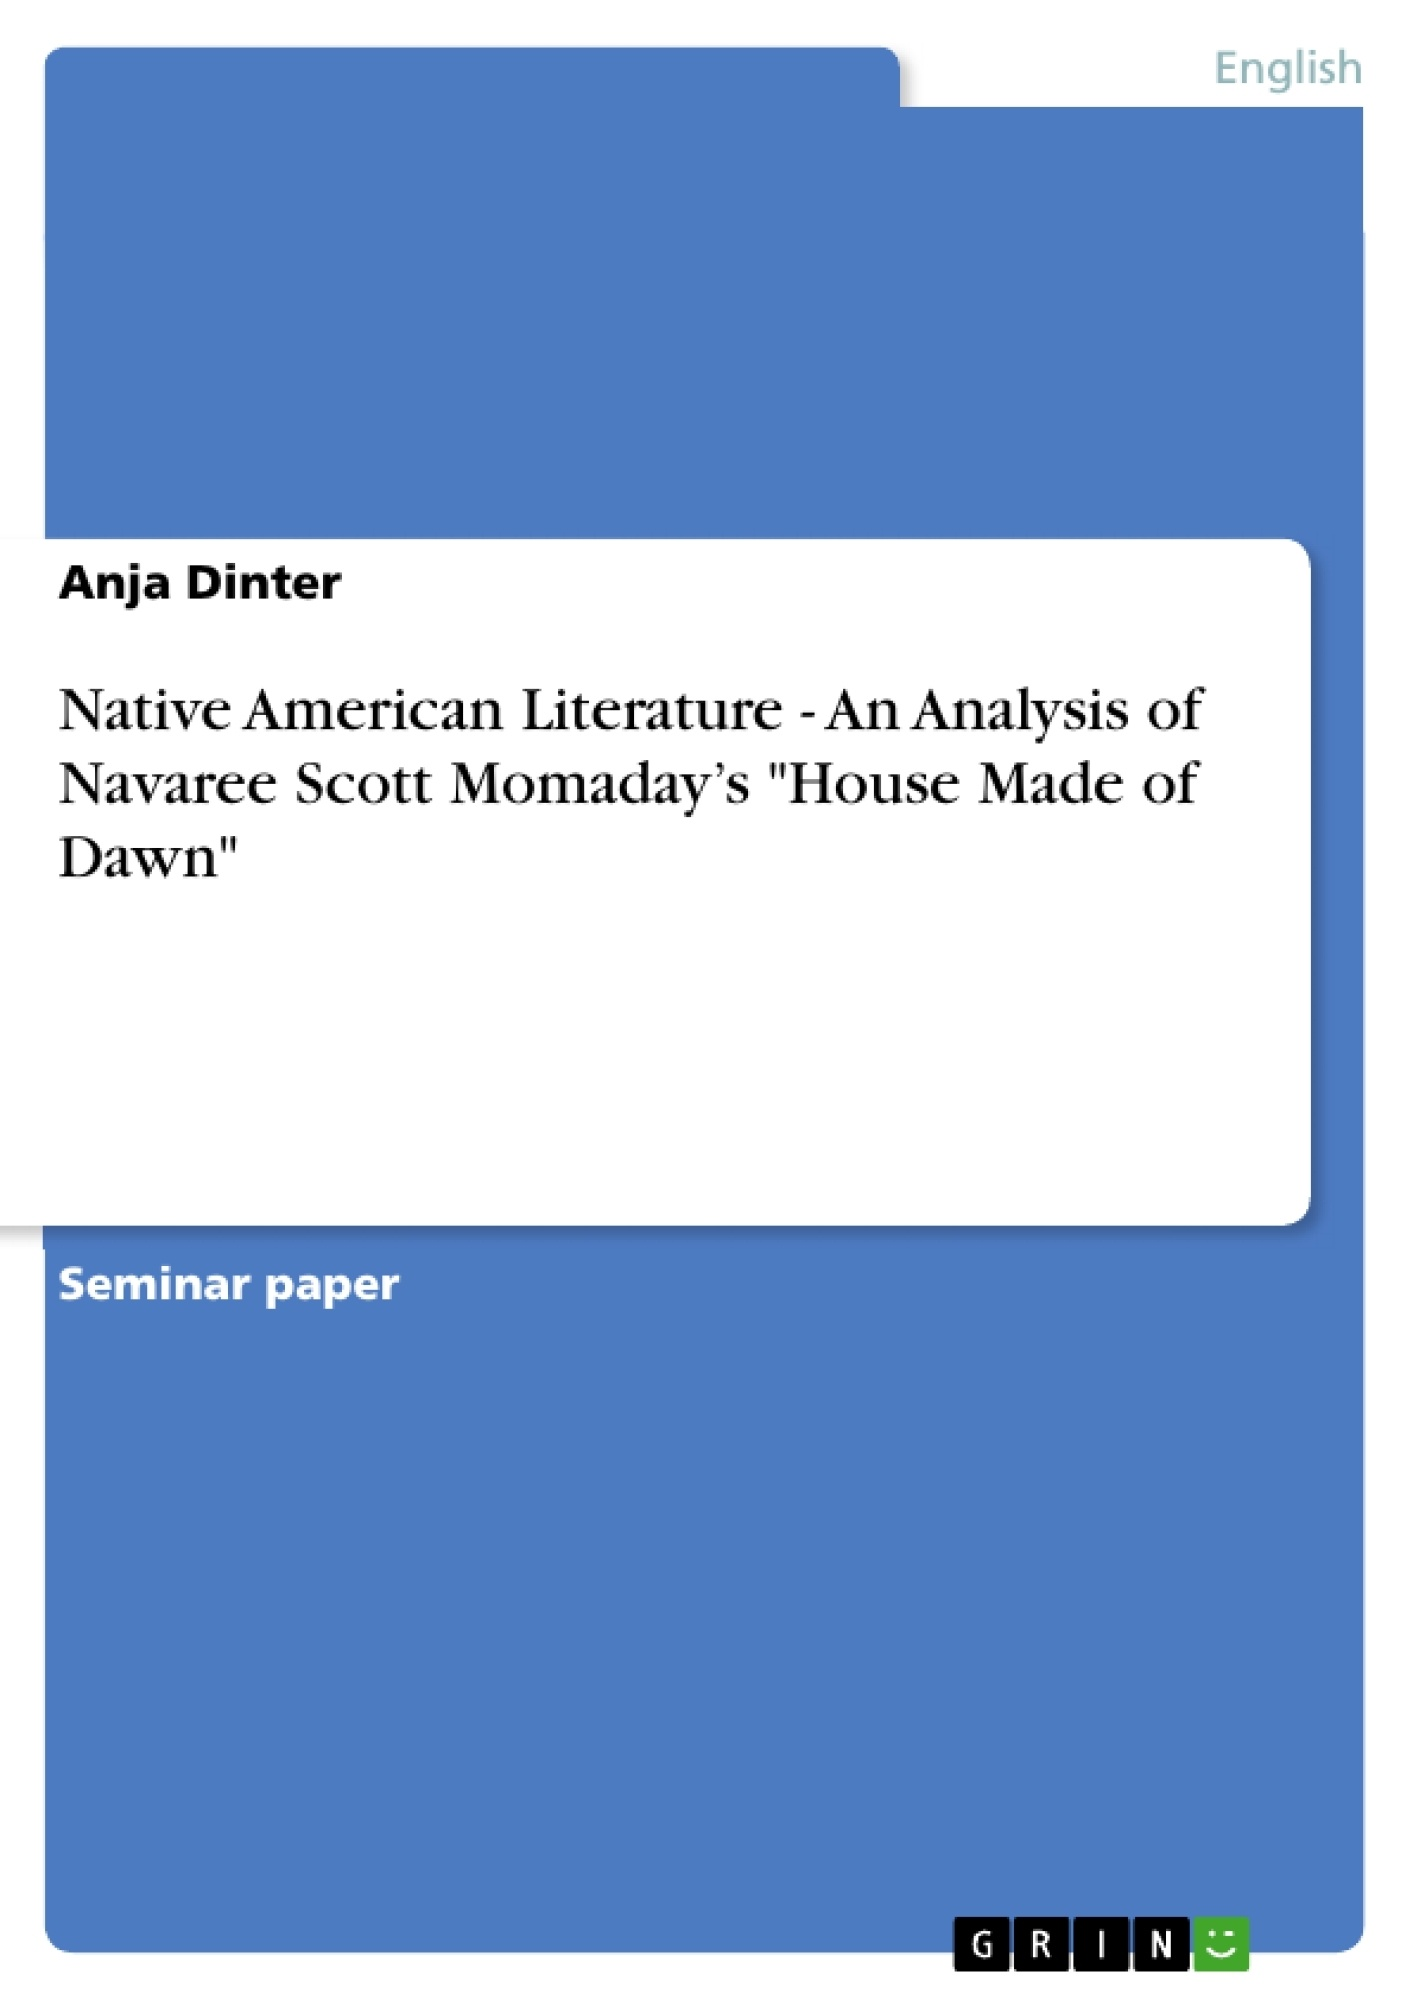 """Title: Native American Literature - An Analysis of Navaree Scott Momaday's """"House Made of Dawn"""""""